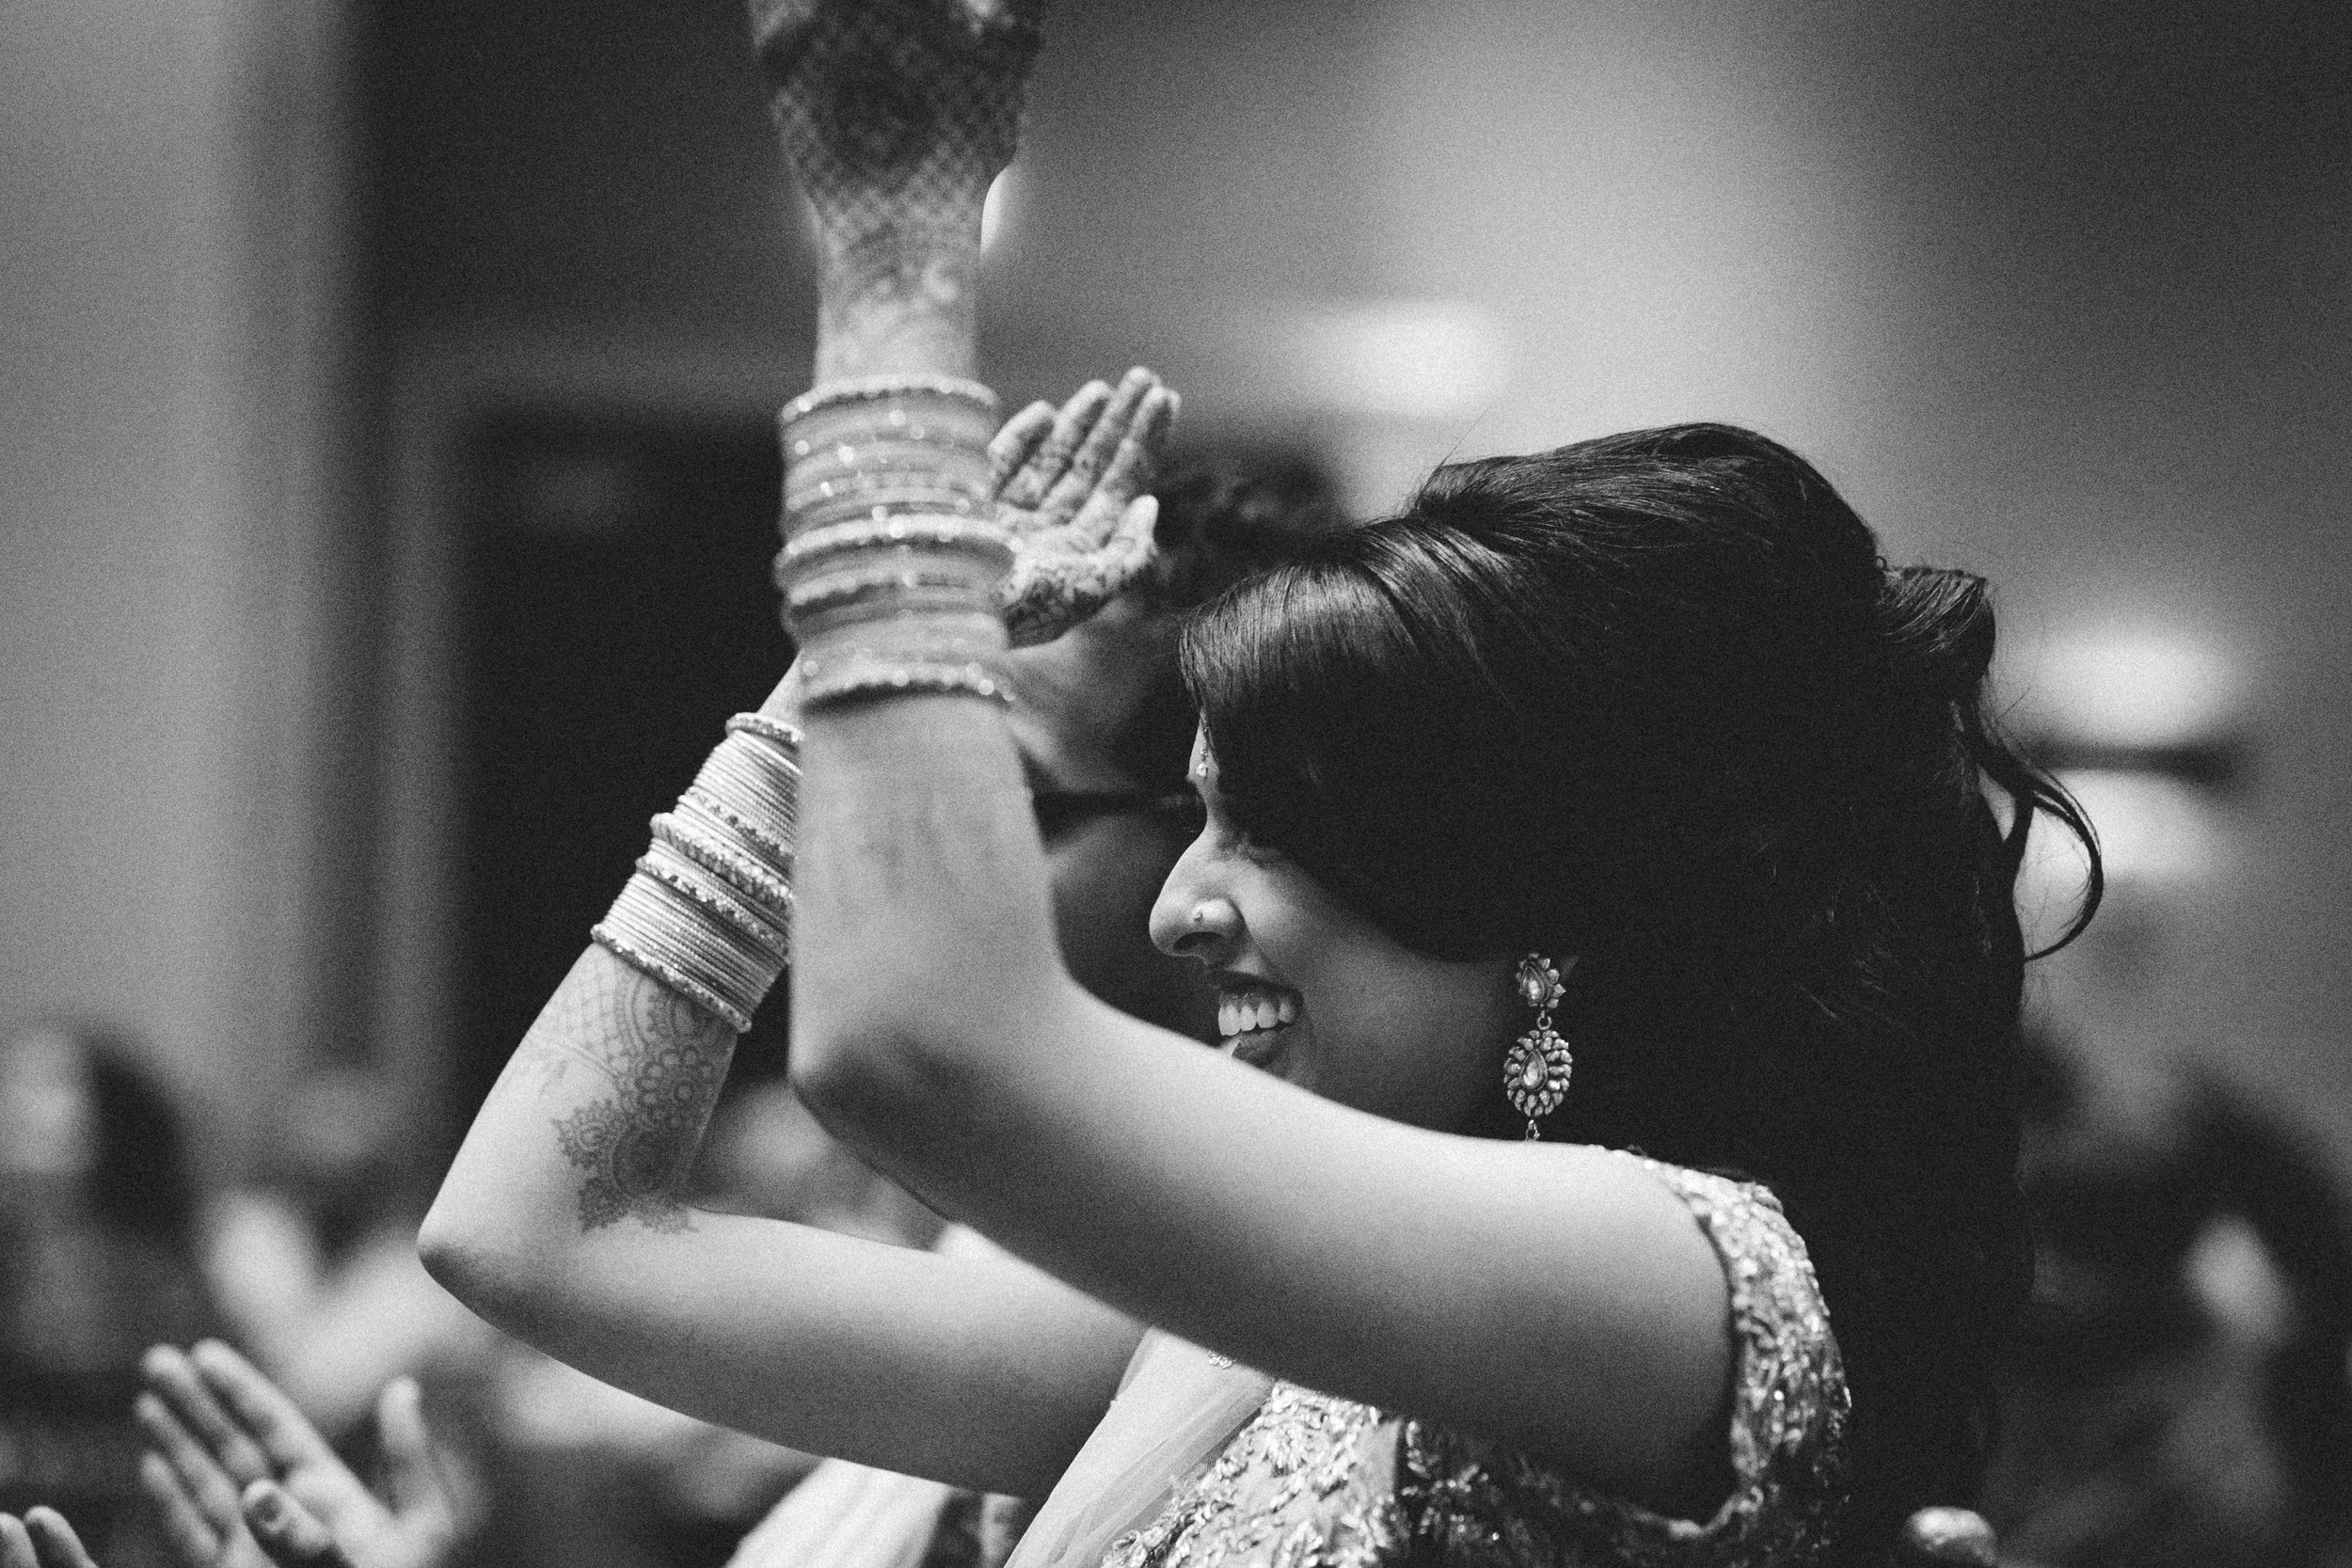 Aparna-Ankit-Patel-Shah-Detroit-Michigan-Shadow-Shine-Pictures-Photography-Indian-Cinematography